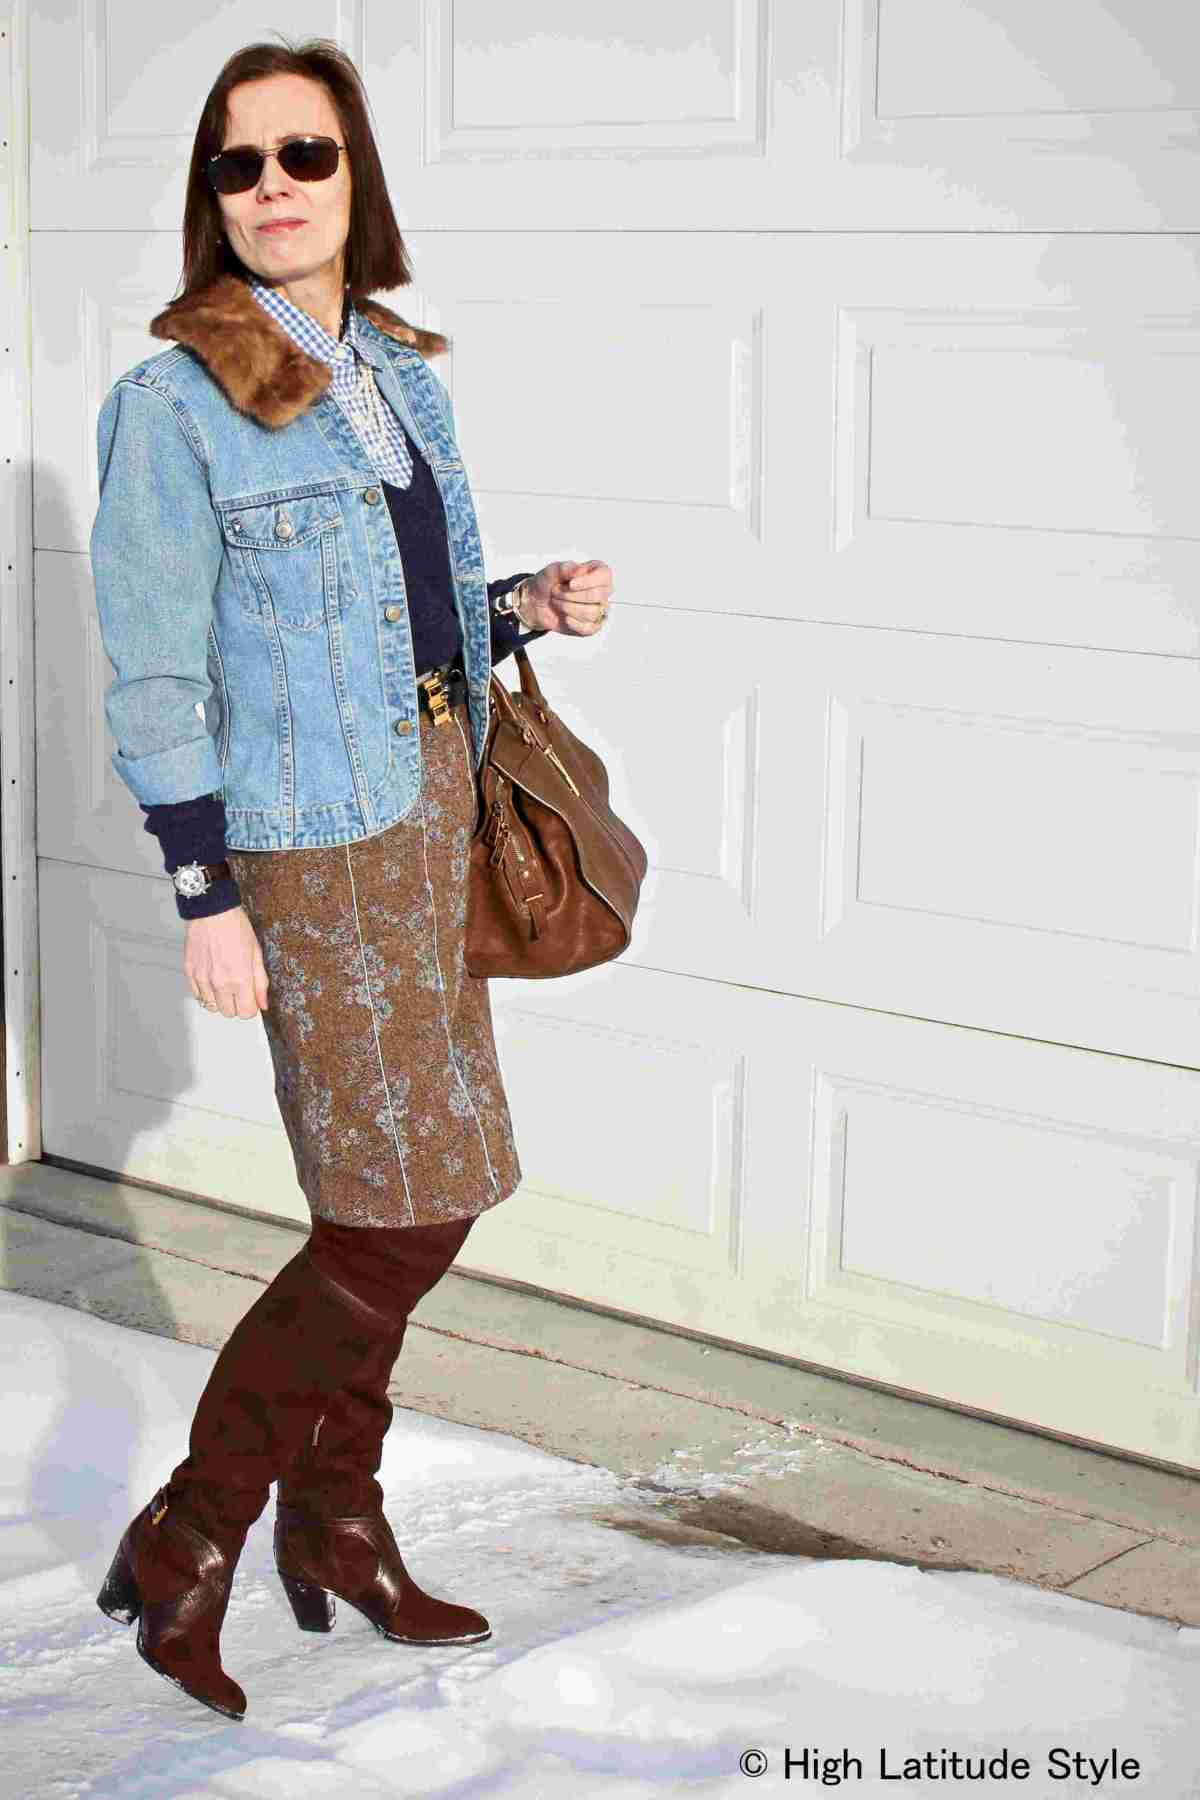 midlife blogger looking posh chic in a tweed skirt with denim jacket and over-the-knee boots